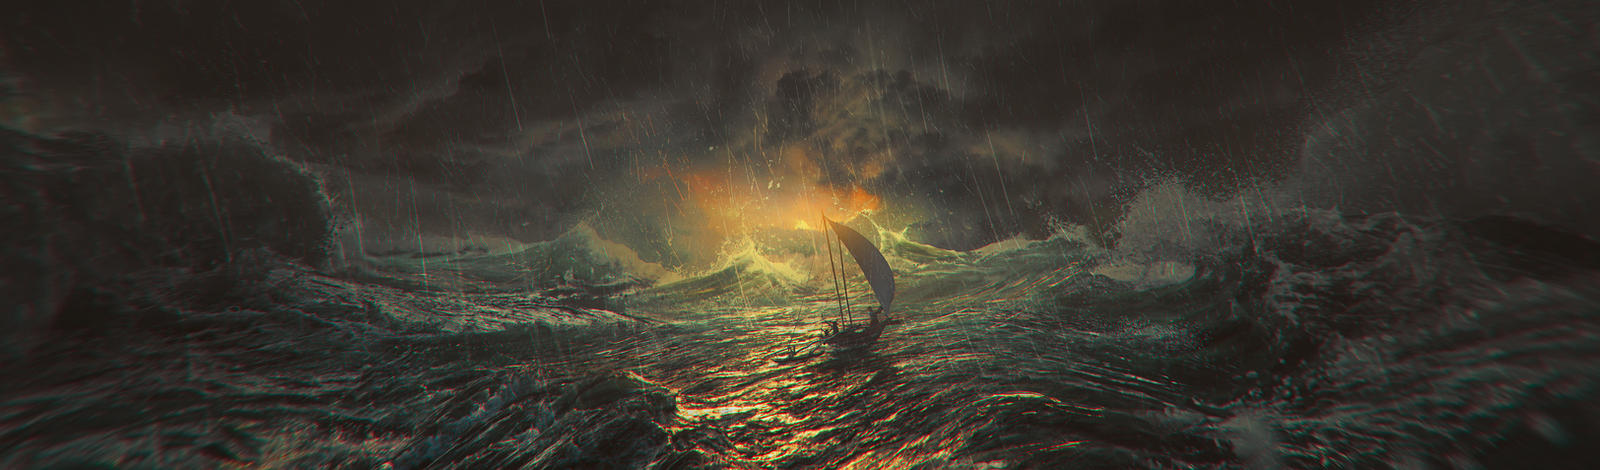 Cross Symphonic - A Flame in the Hurricane by Rowye